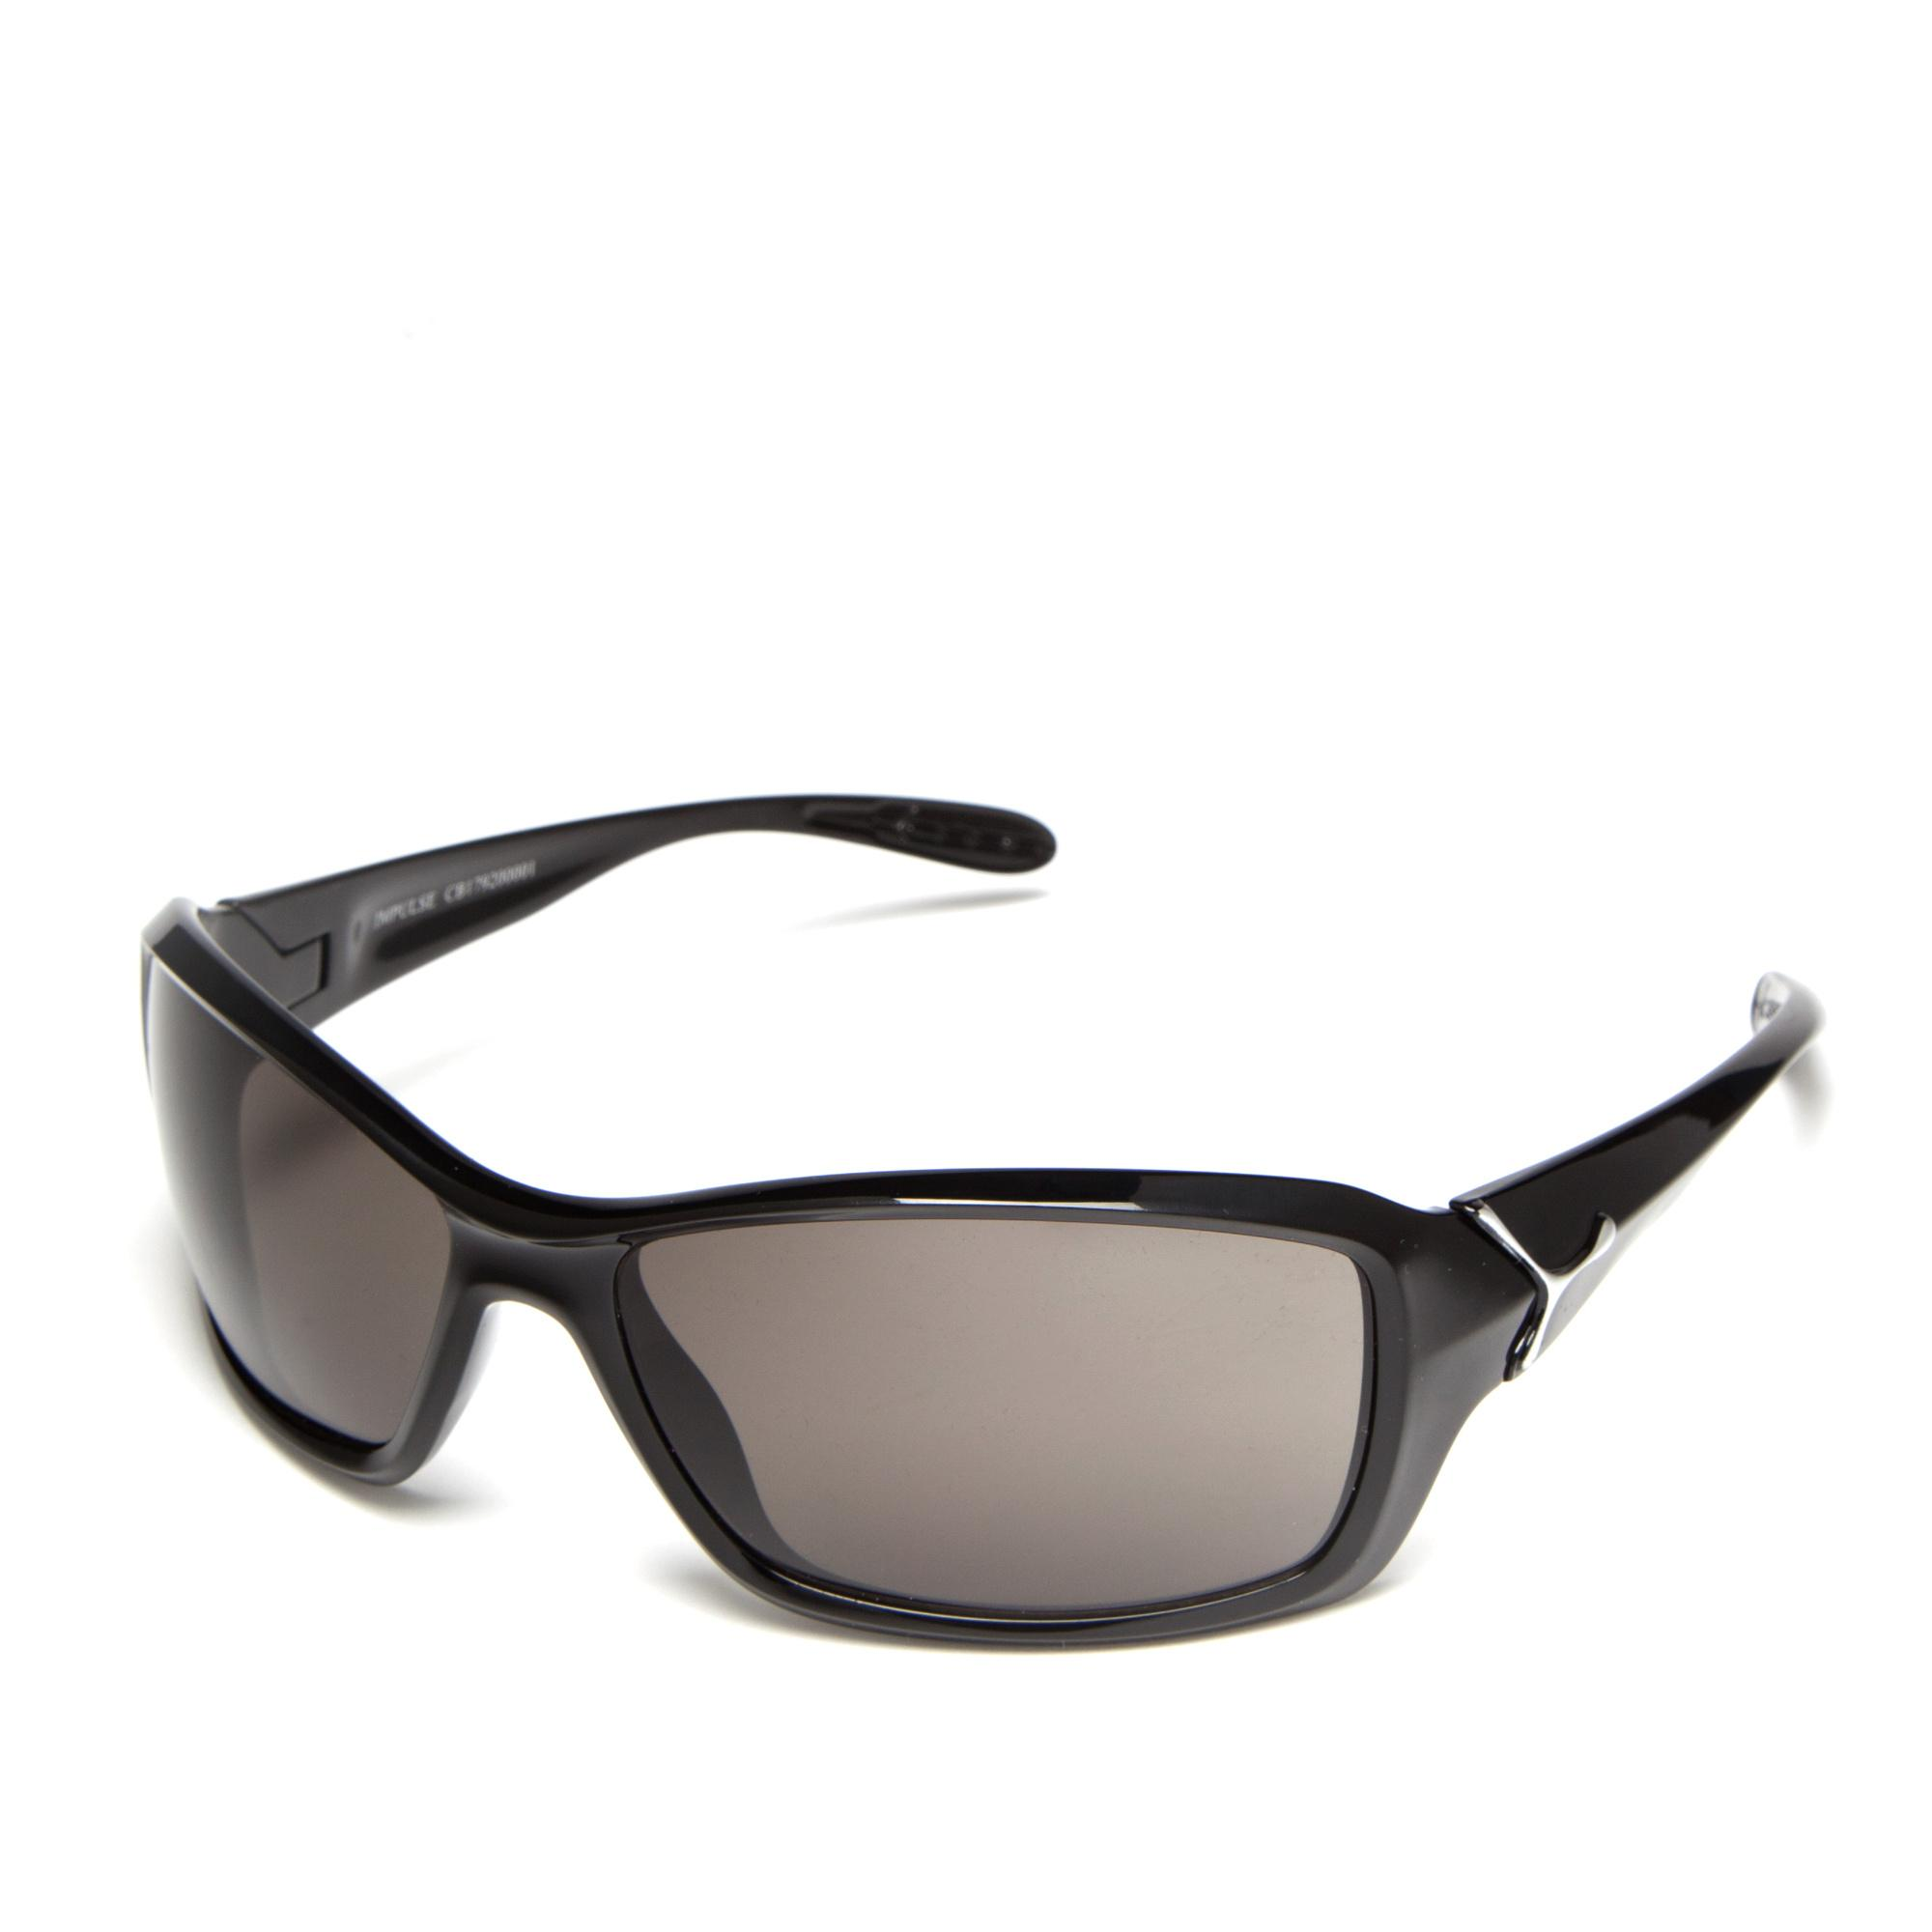 47ef9105246 Cebe Sunglasses Price